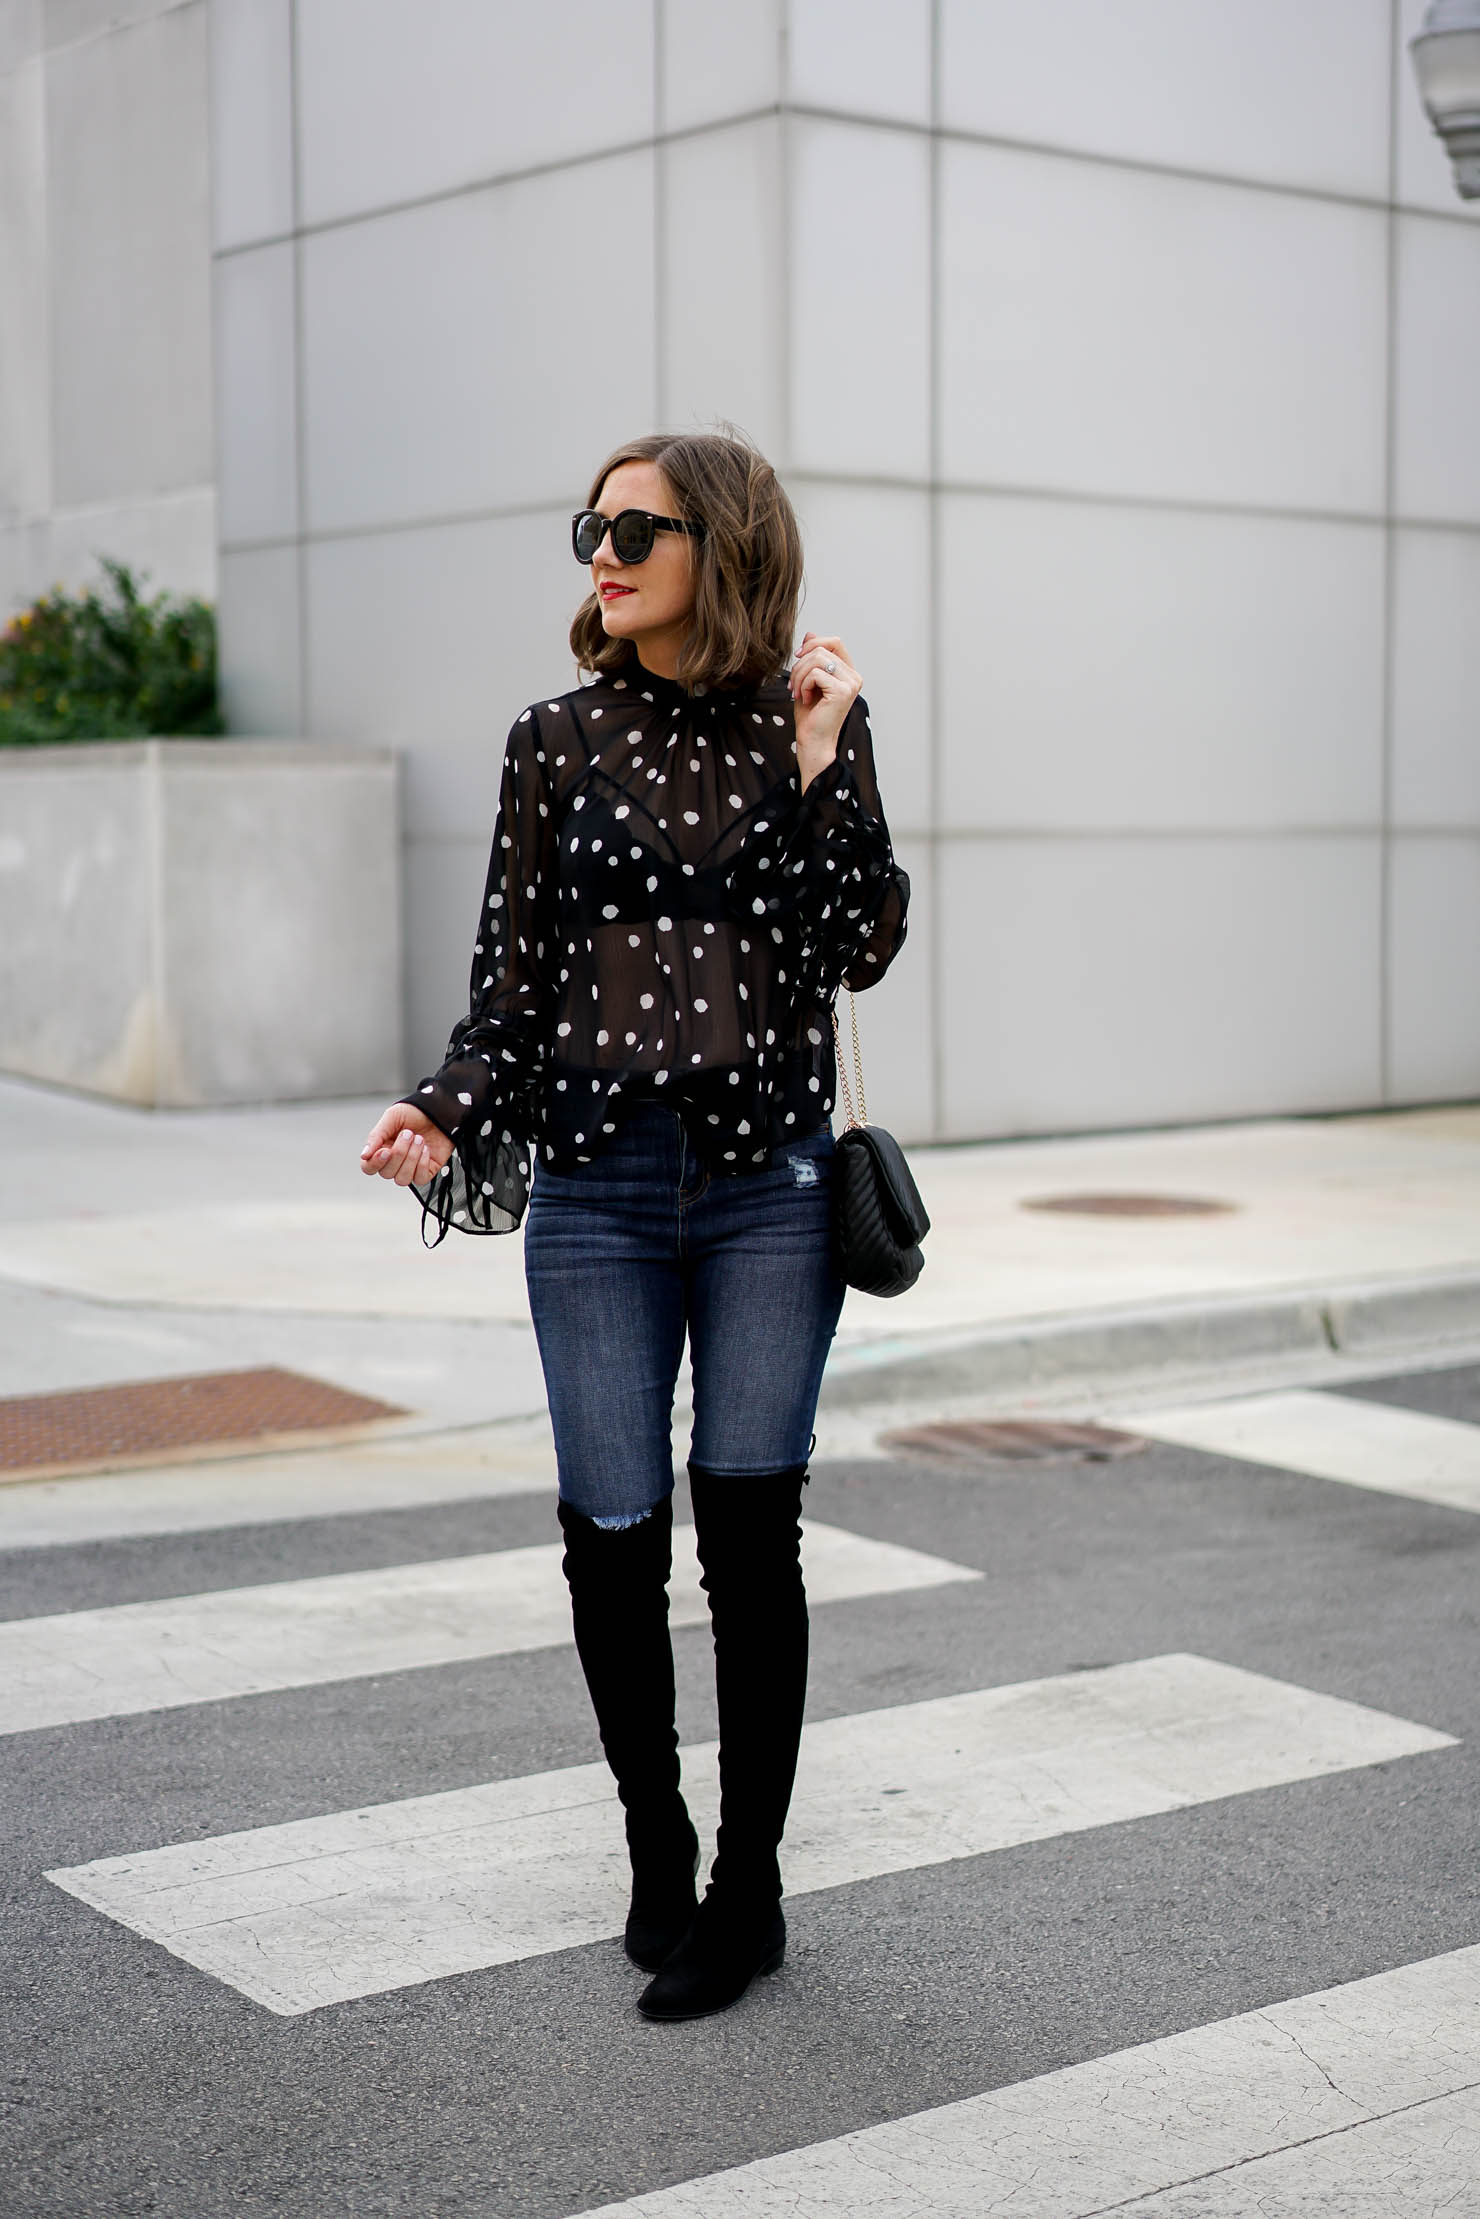 Winter Date Night Outfit and Ideas for What to Do - Wishes u0026 Reality